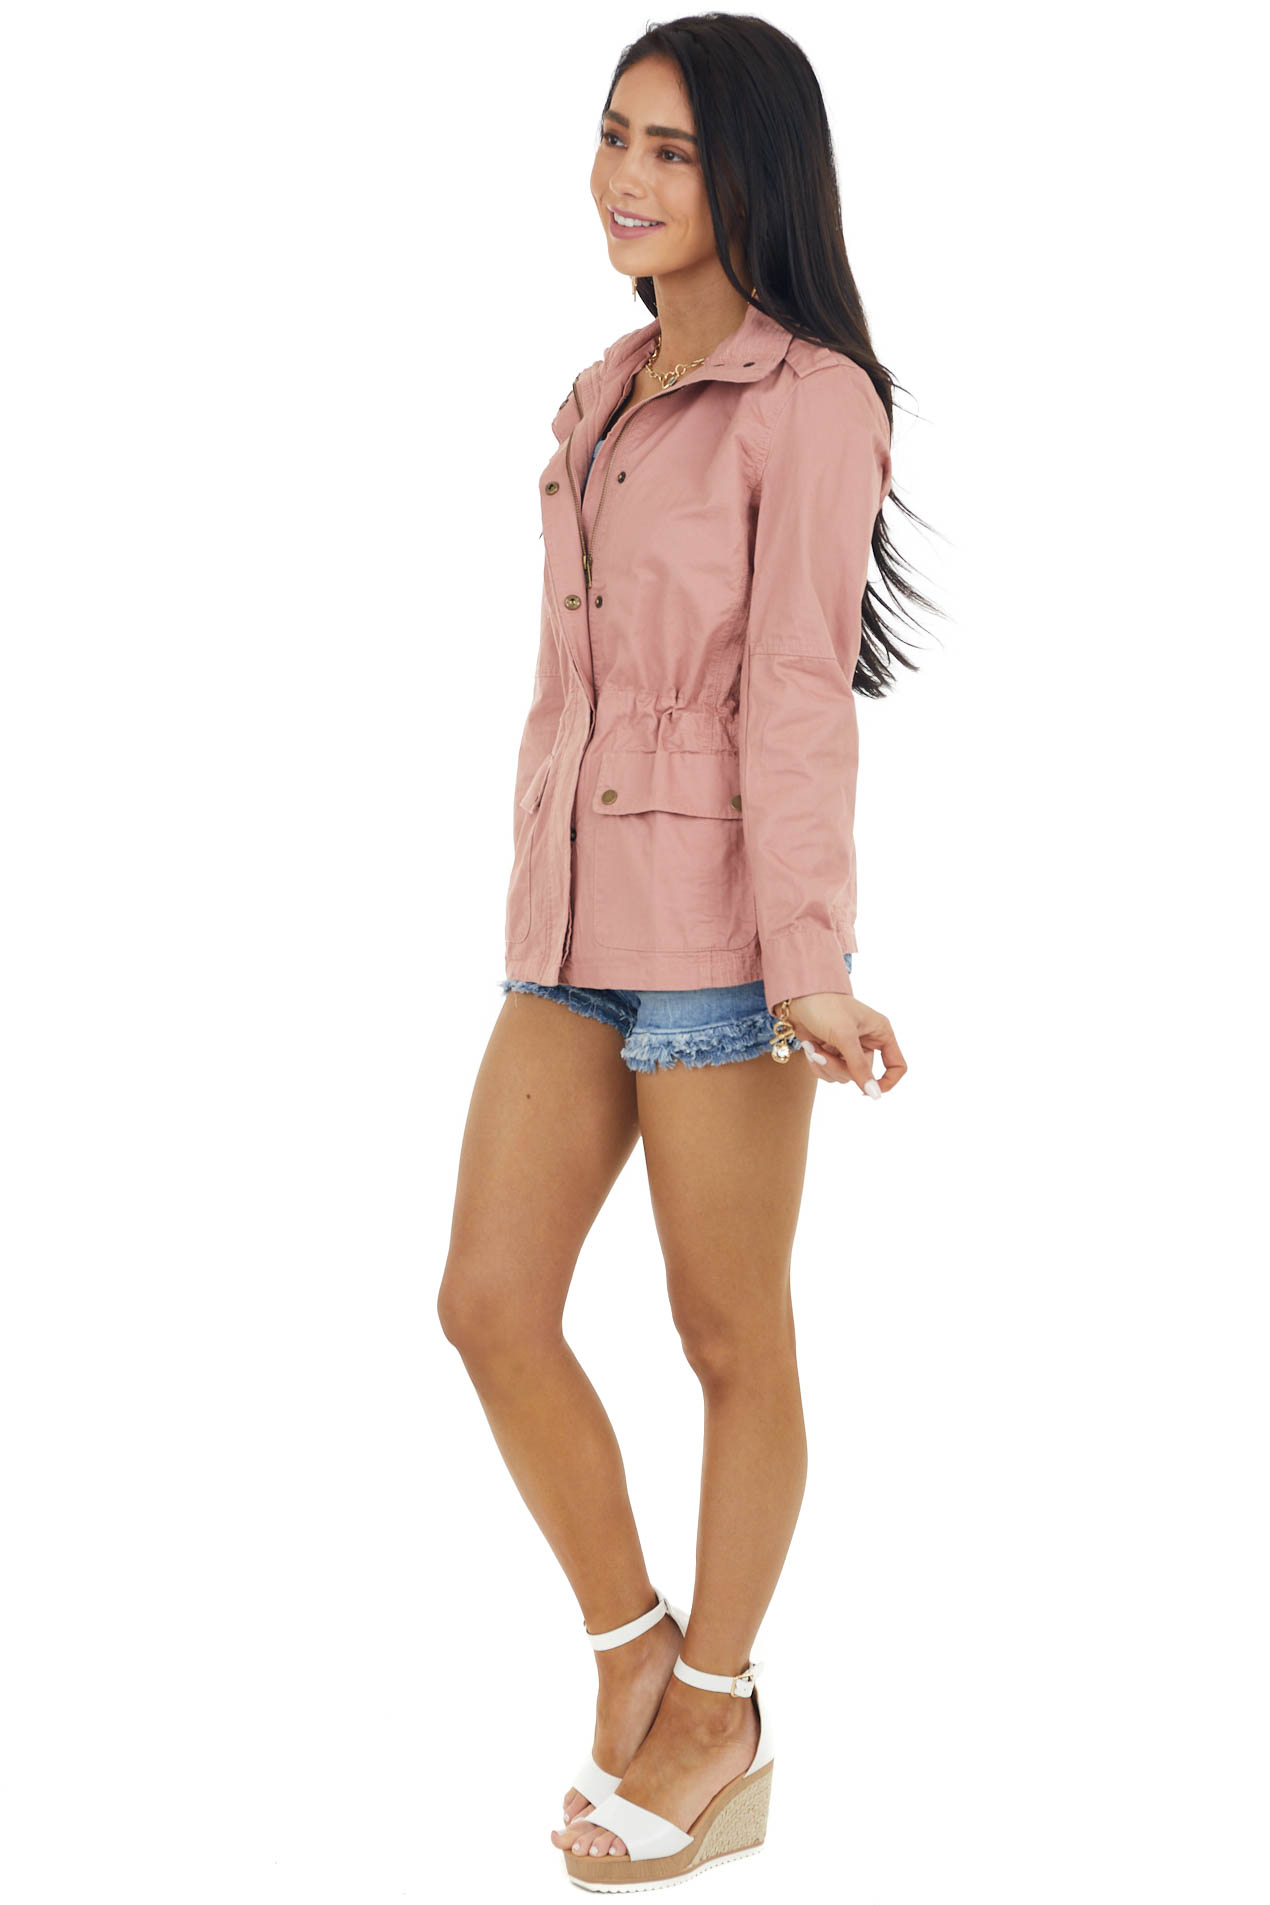 Dusty Rose Anorak Jacket with Pockets and Drawstring Waist